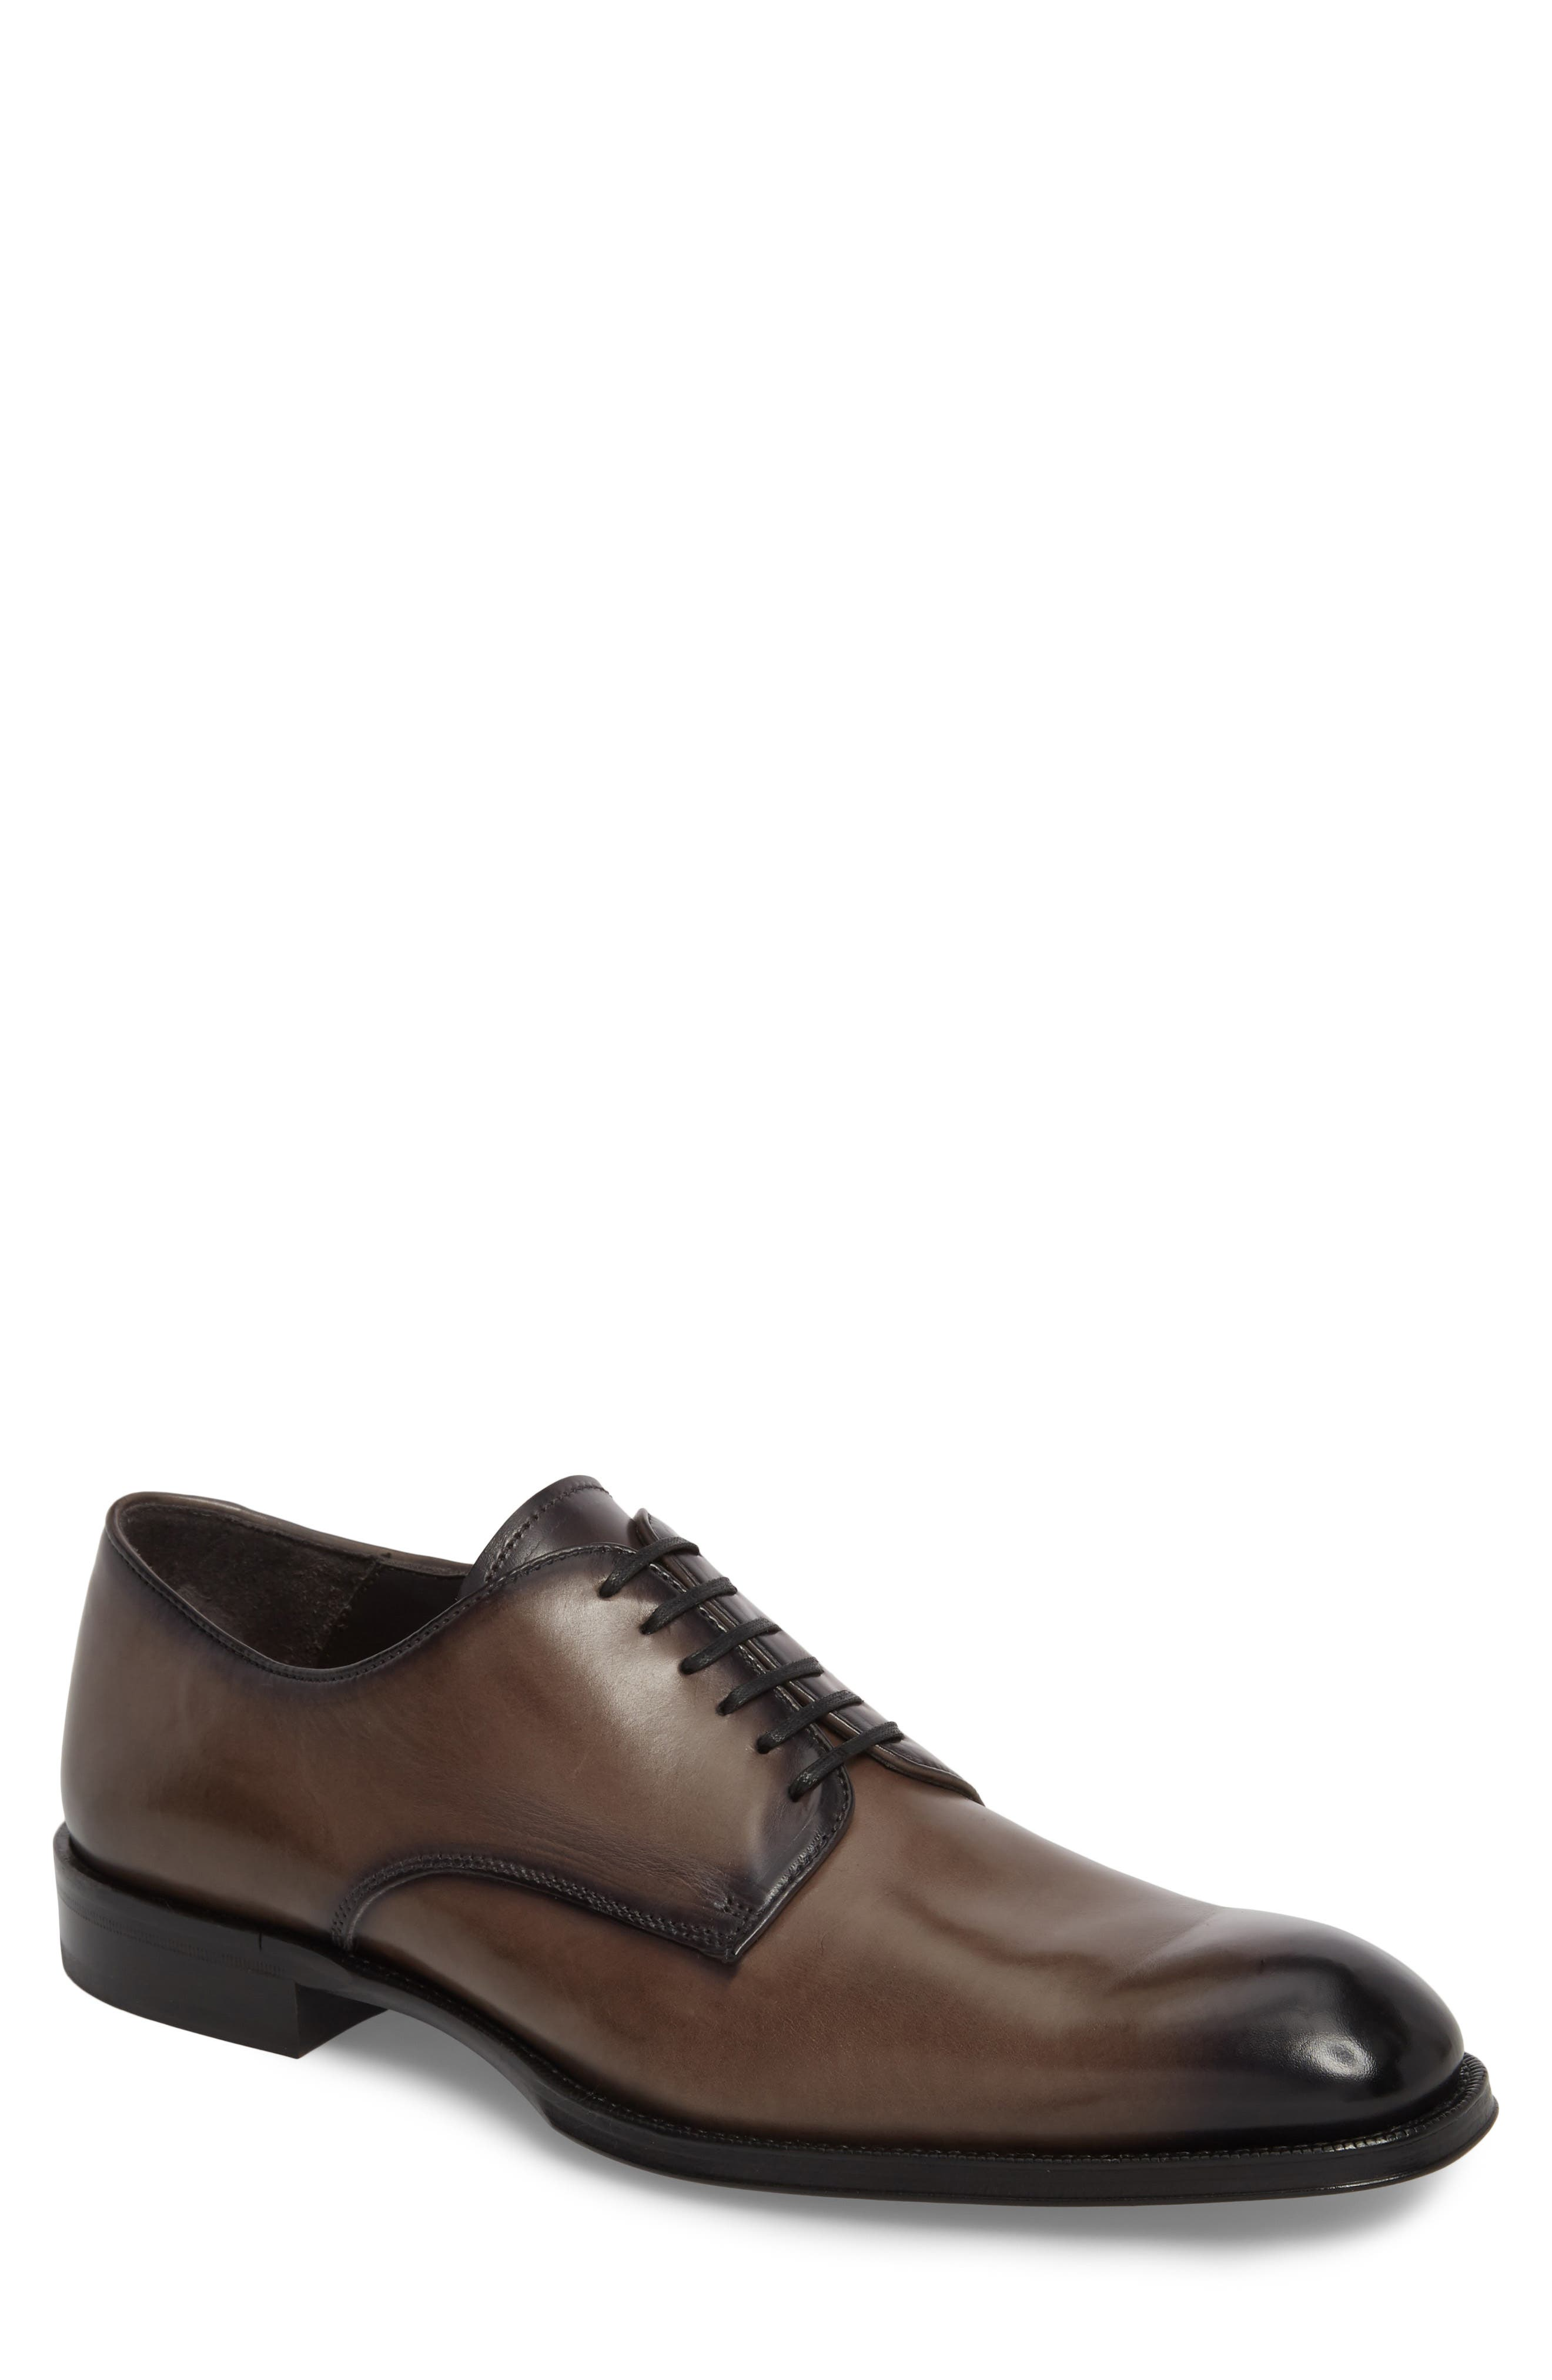 Main Image - To Boot New York Academy Plain Toe Derby (Men)